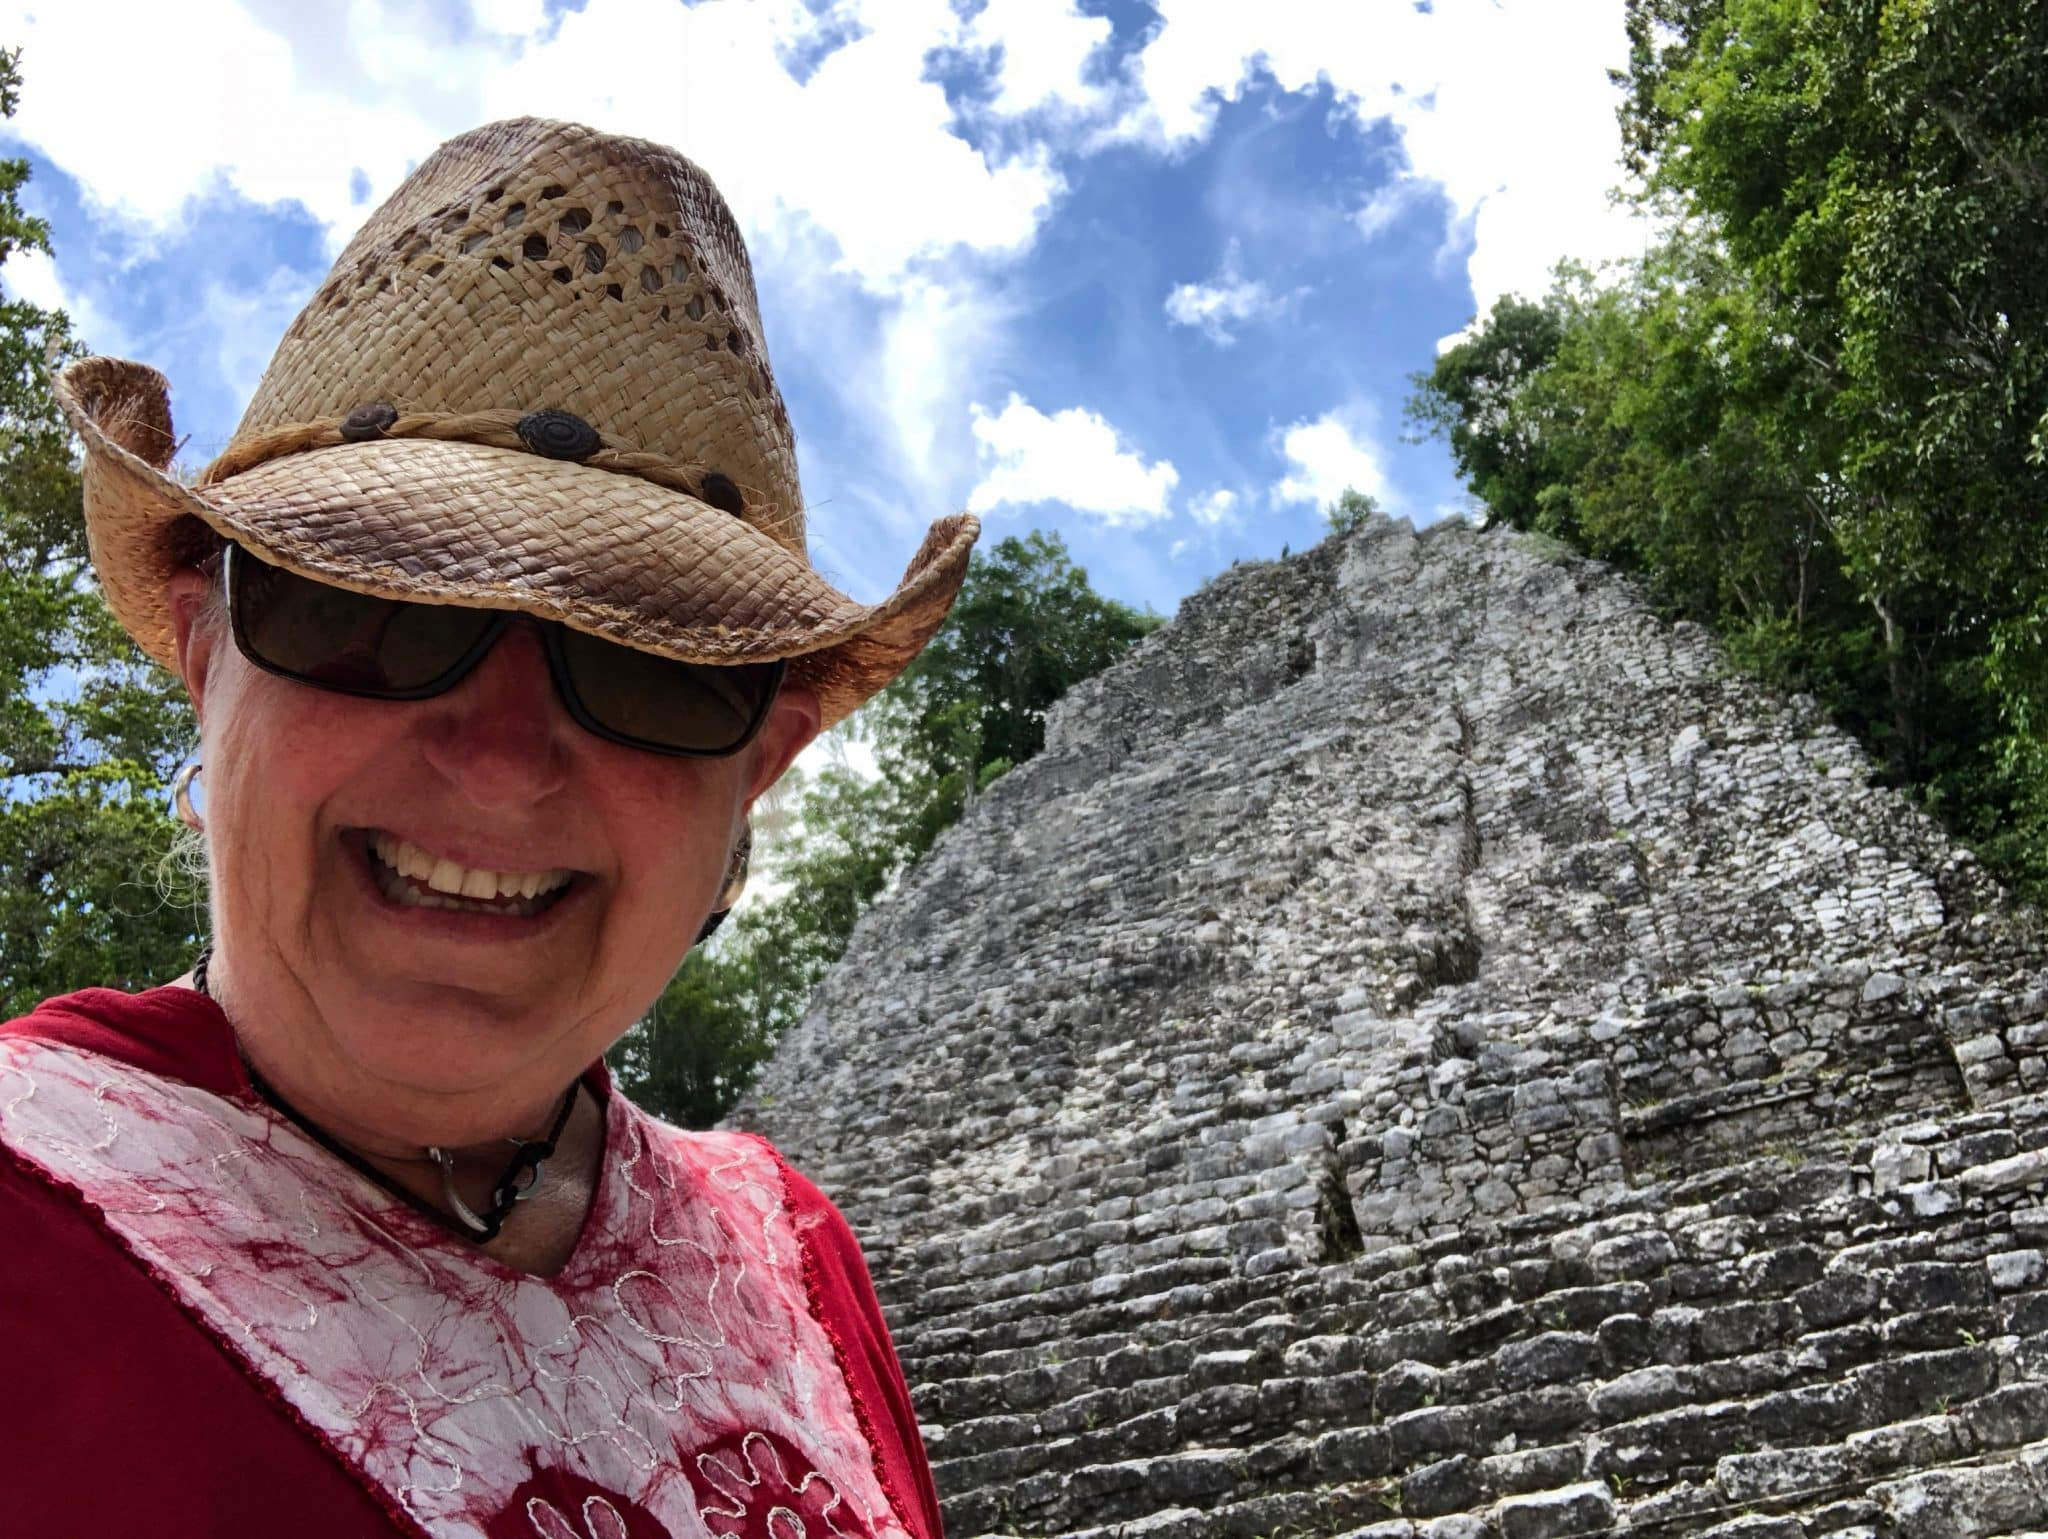 yucatan-coba-melanie-ceo-rare-finds-travel